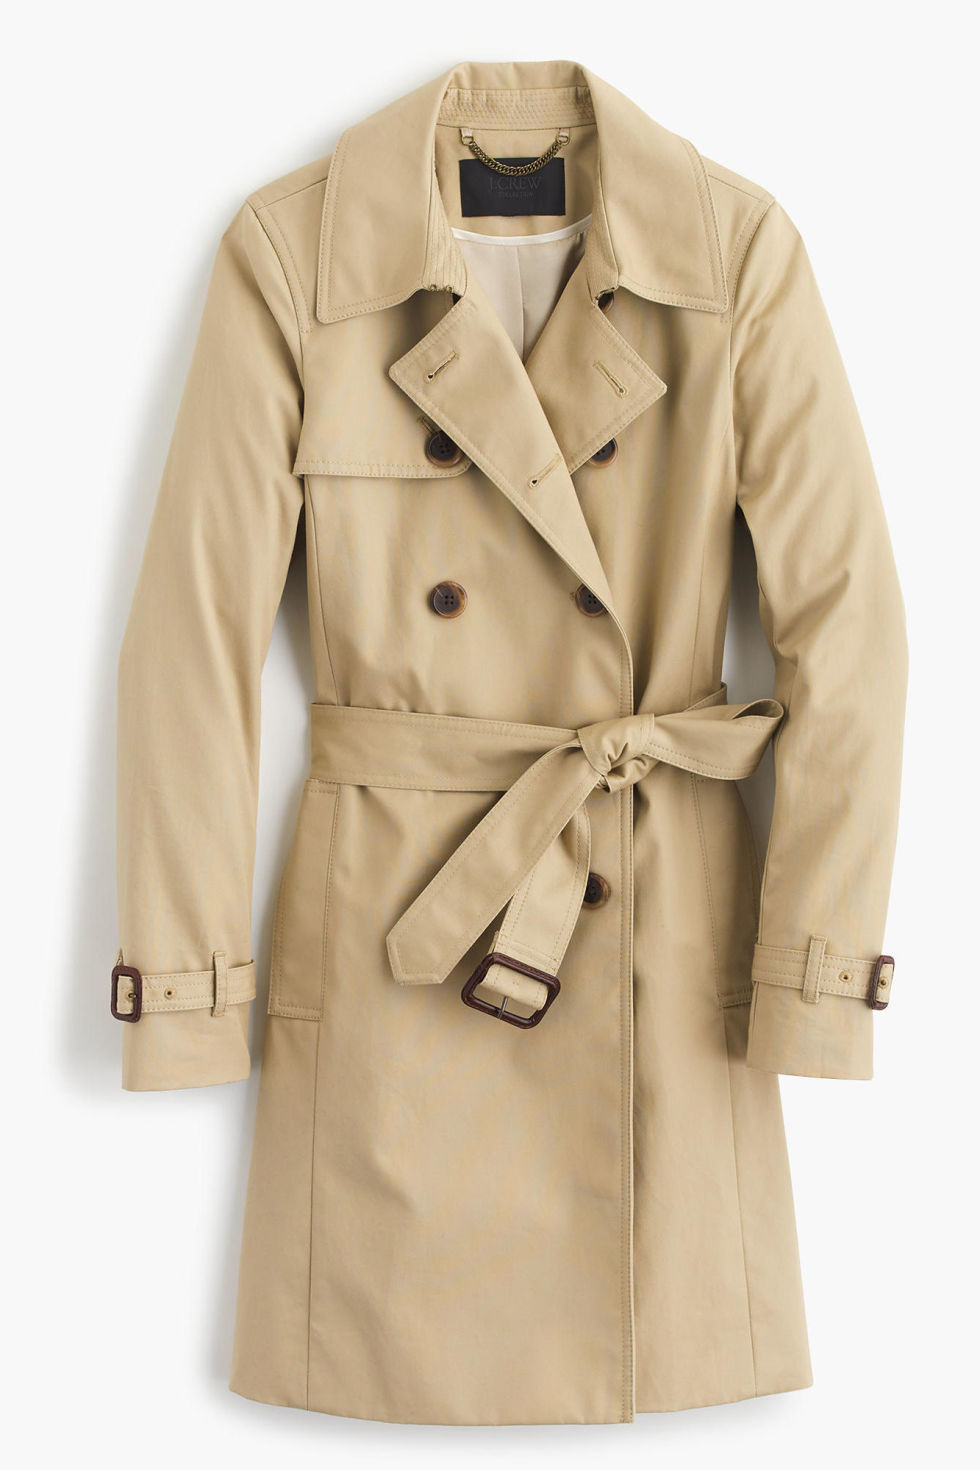 9 Best Beige Trench Coats for Fall 2017 - Classic Women's Trench Coats